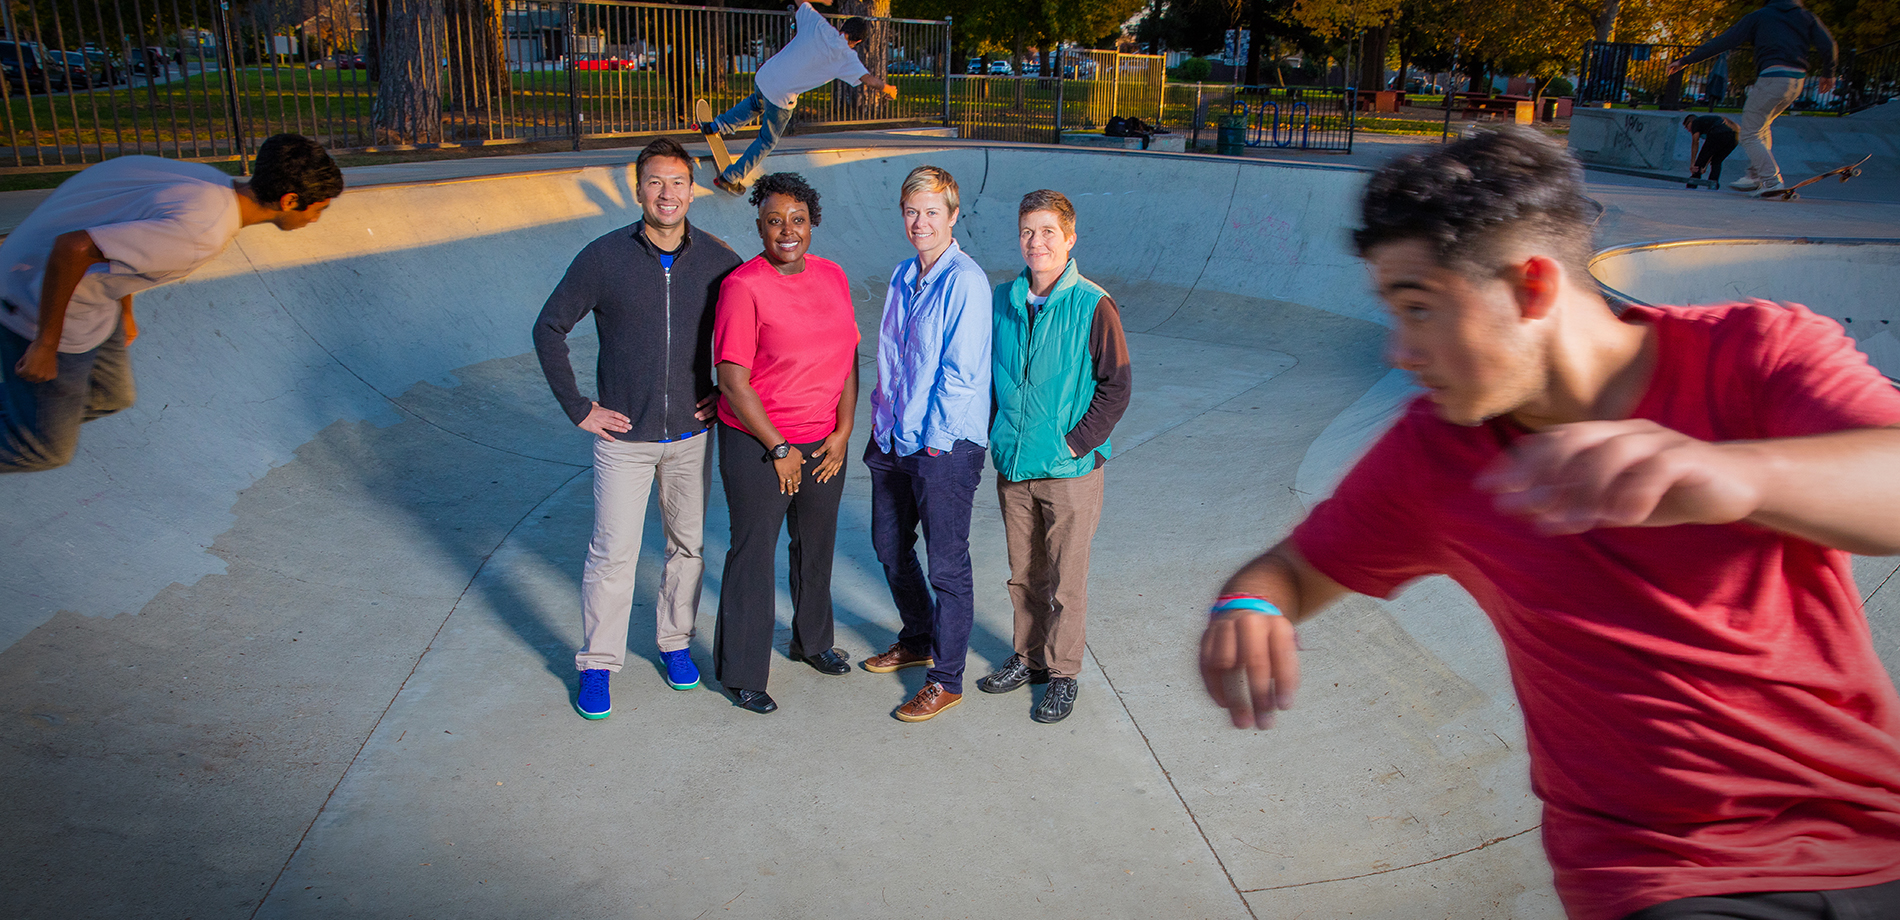 Photo of CSUEB kinesiology professors posing at a skateboarding park